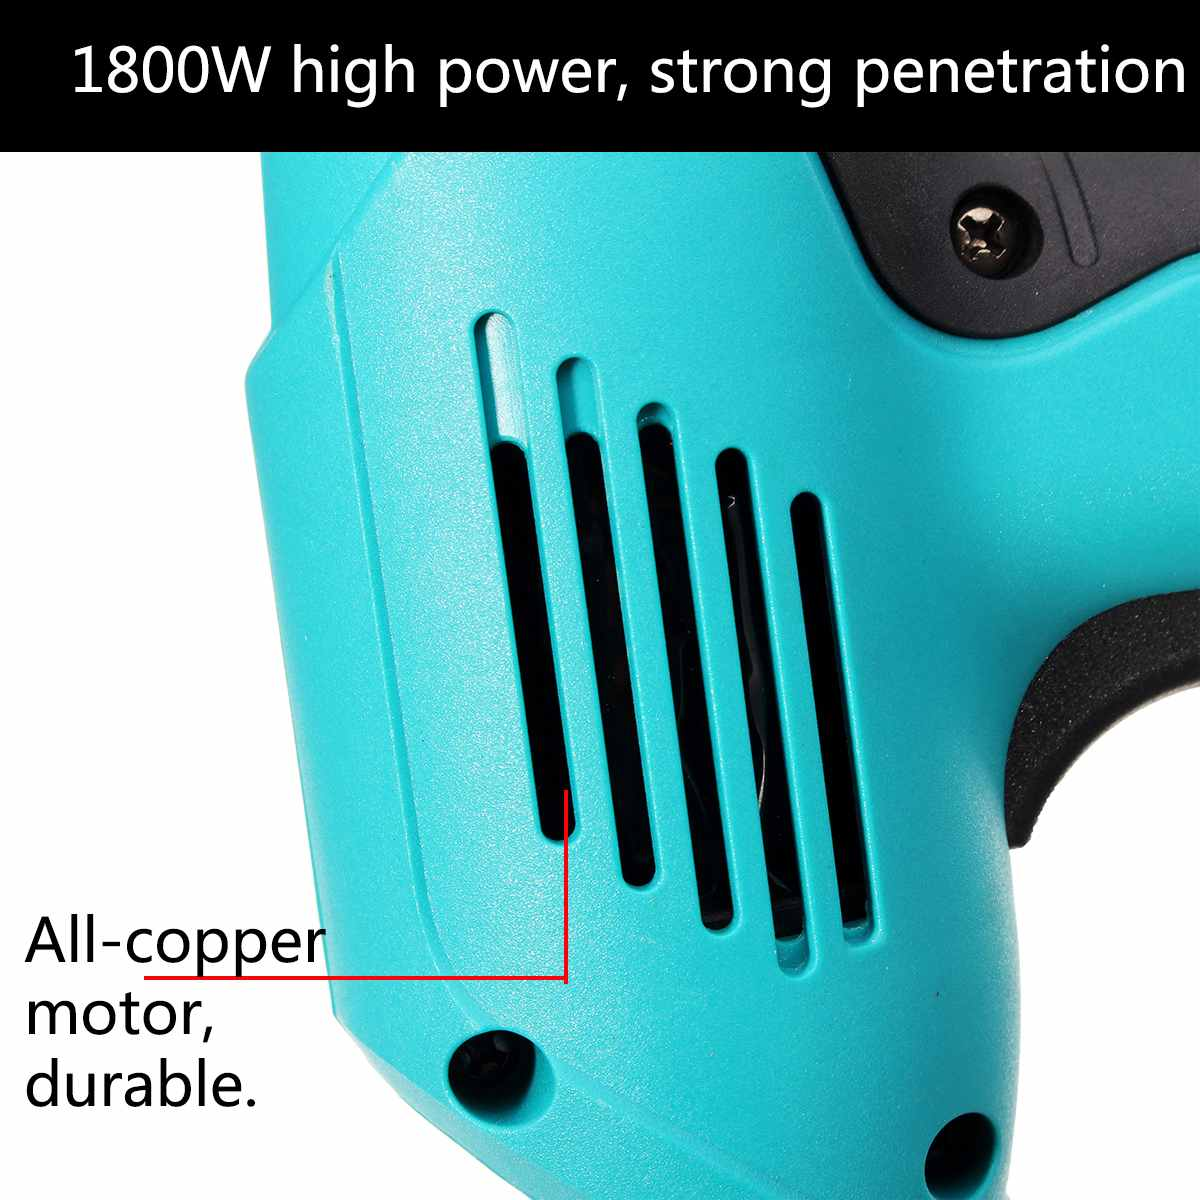 Heavy Tacker Nail Electrical Electric Straight Tool Nail 2000W Duty Gun Portable Electric Gun Woodworking 10 220V 30mm Staple